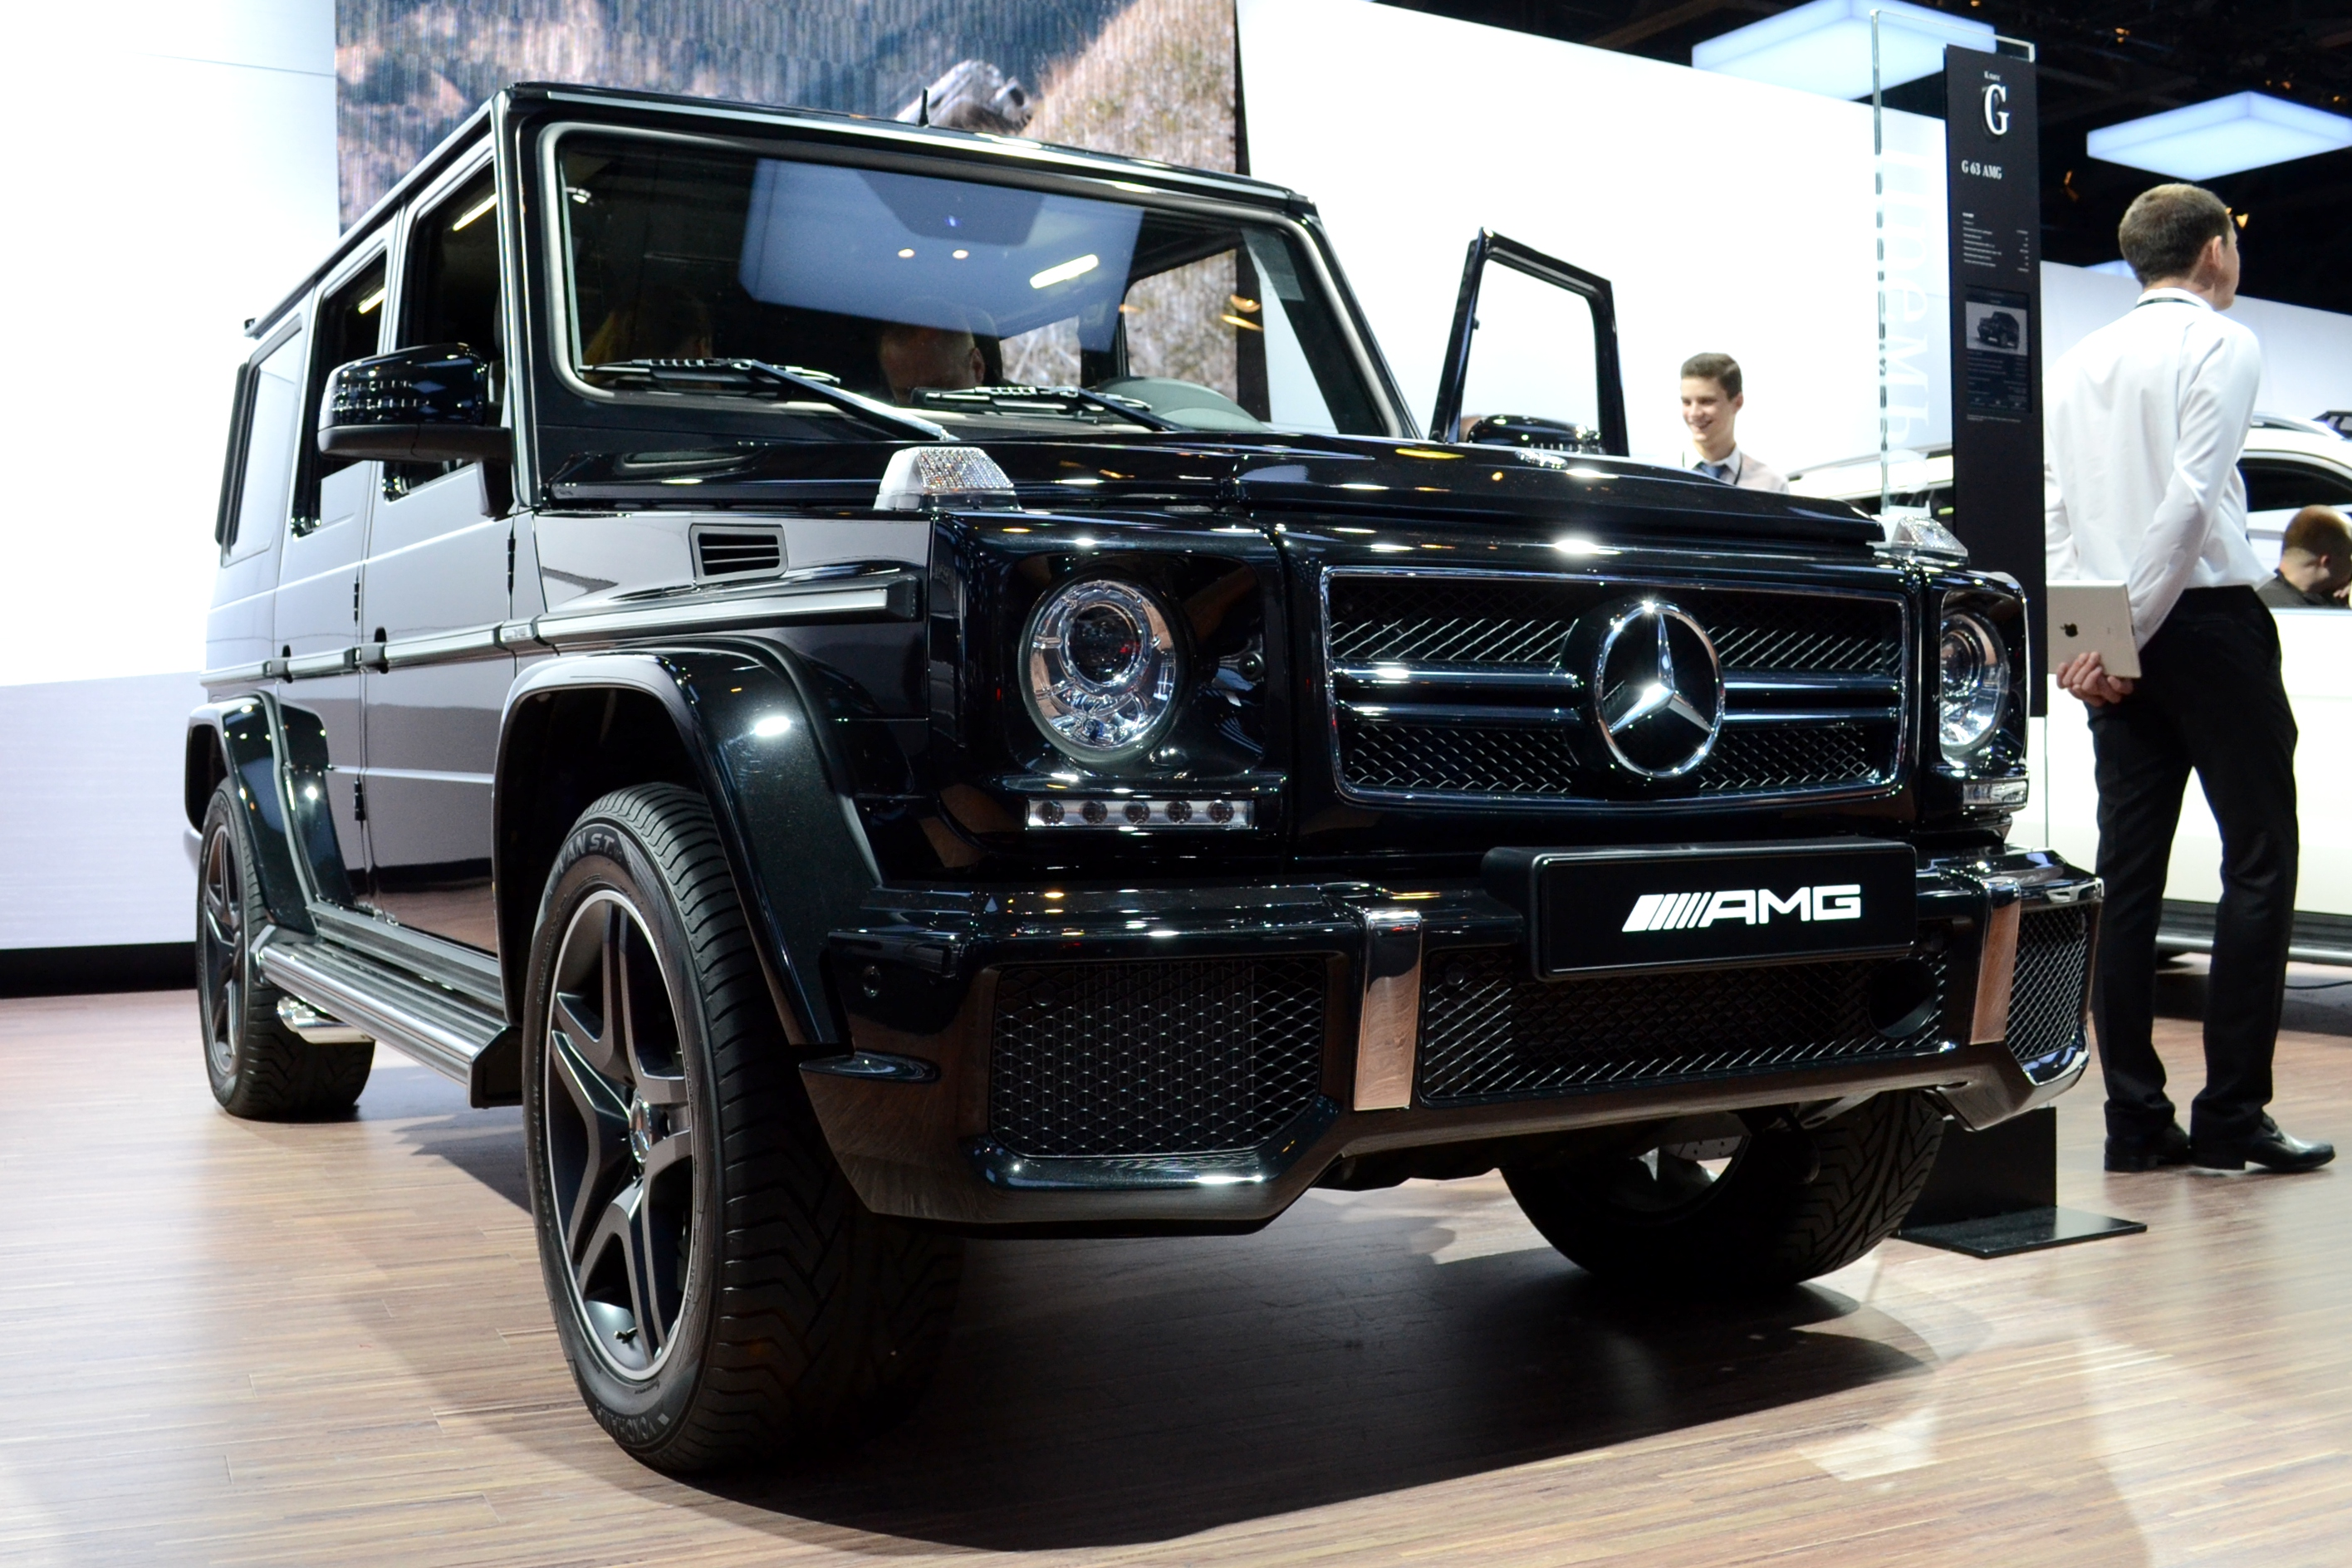 file mercedes benz g 63 amg 2012 jpg wikipedia. Black Bedroom Furniture Sets. Home Design Ideas